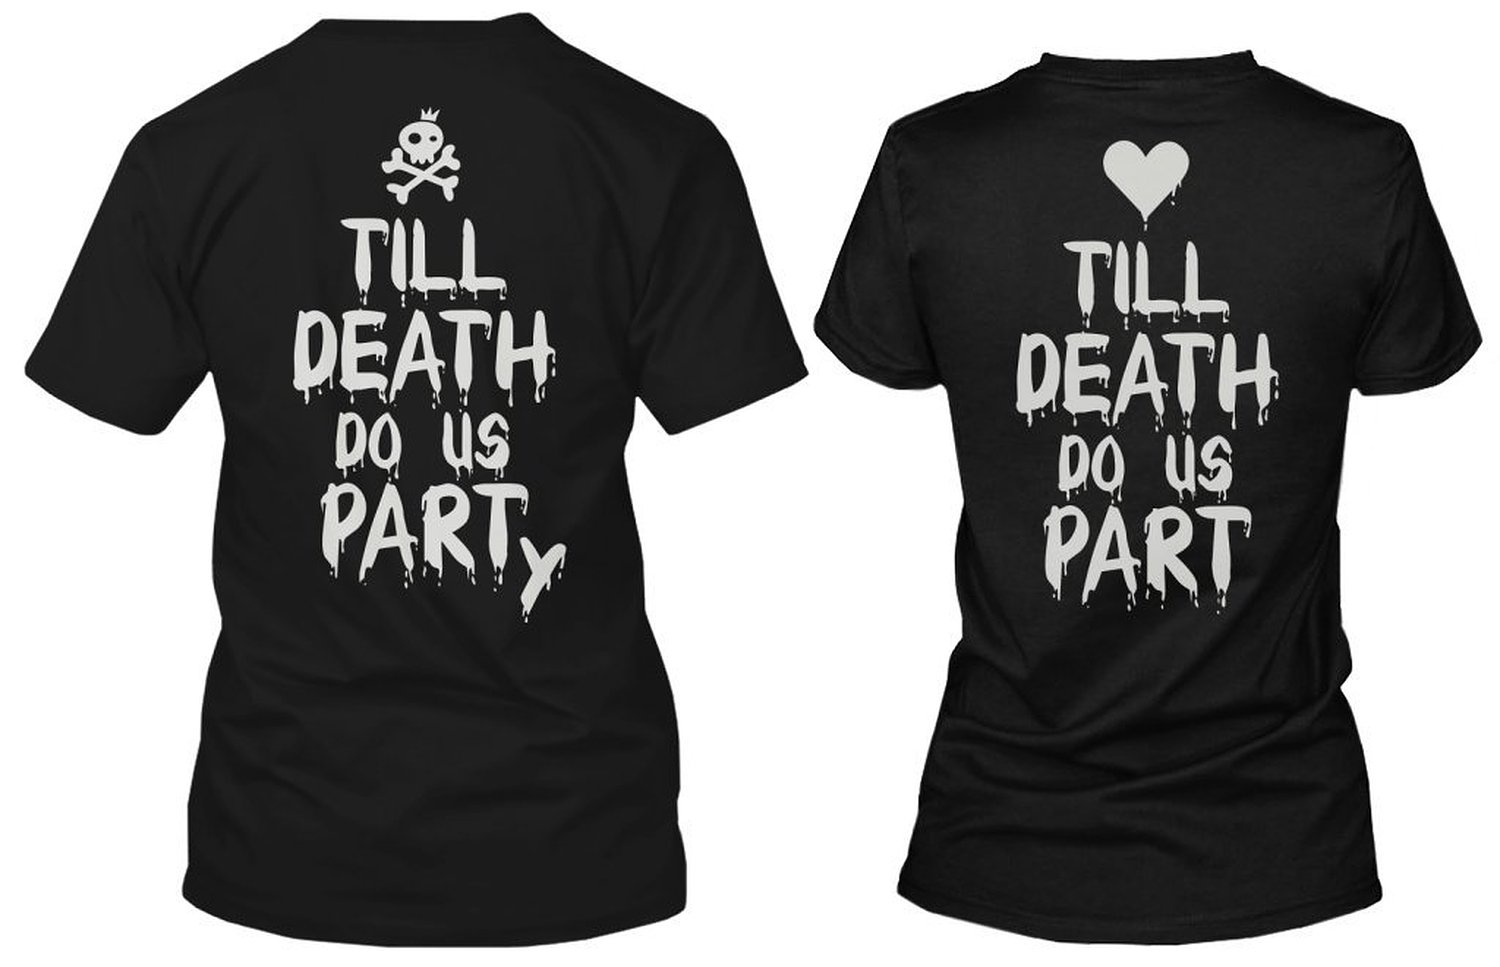 Amazon.com: Couple Shirts for Halloween - Till Death Do Us Part Party: Clothing